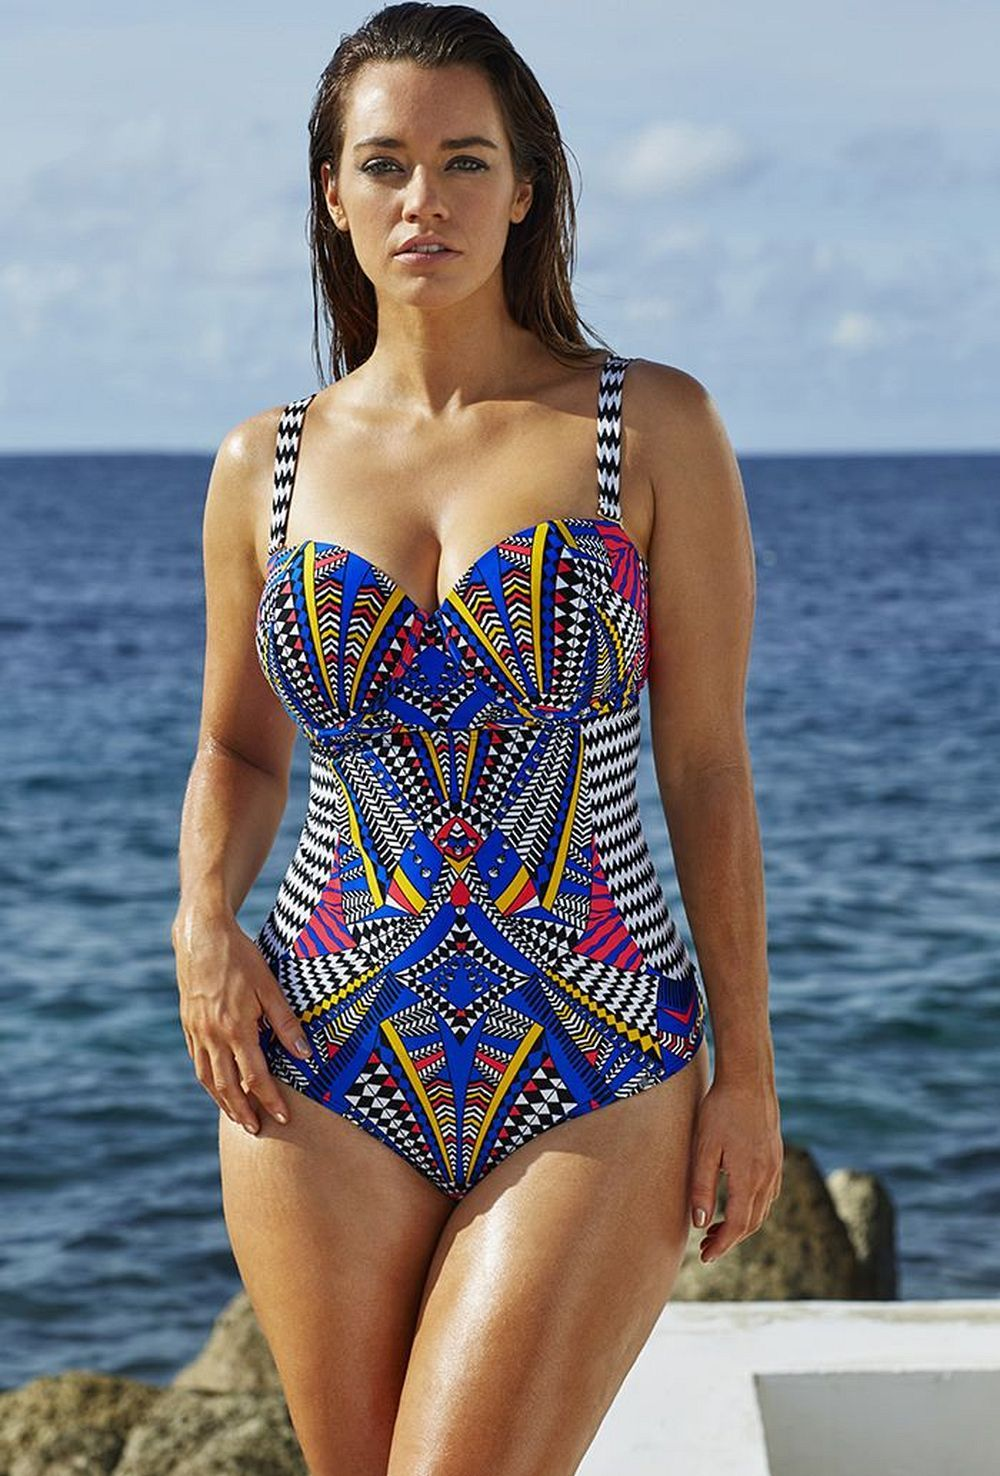 450f70cd52529 Top 5 One-Piece Swimsuit That Support Large Bust | Beauty | Full ...